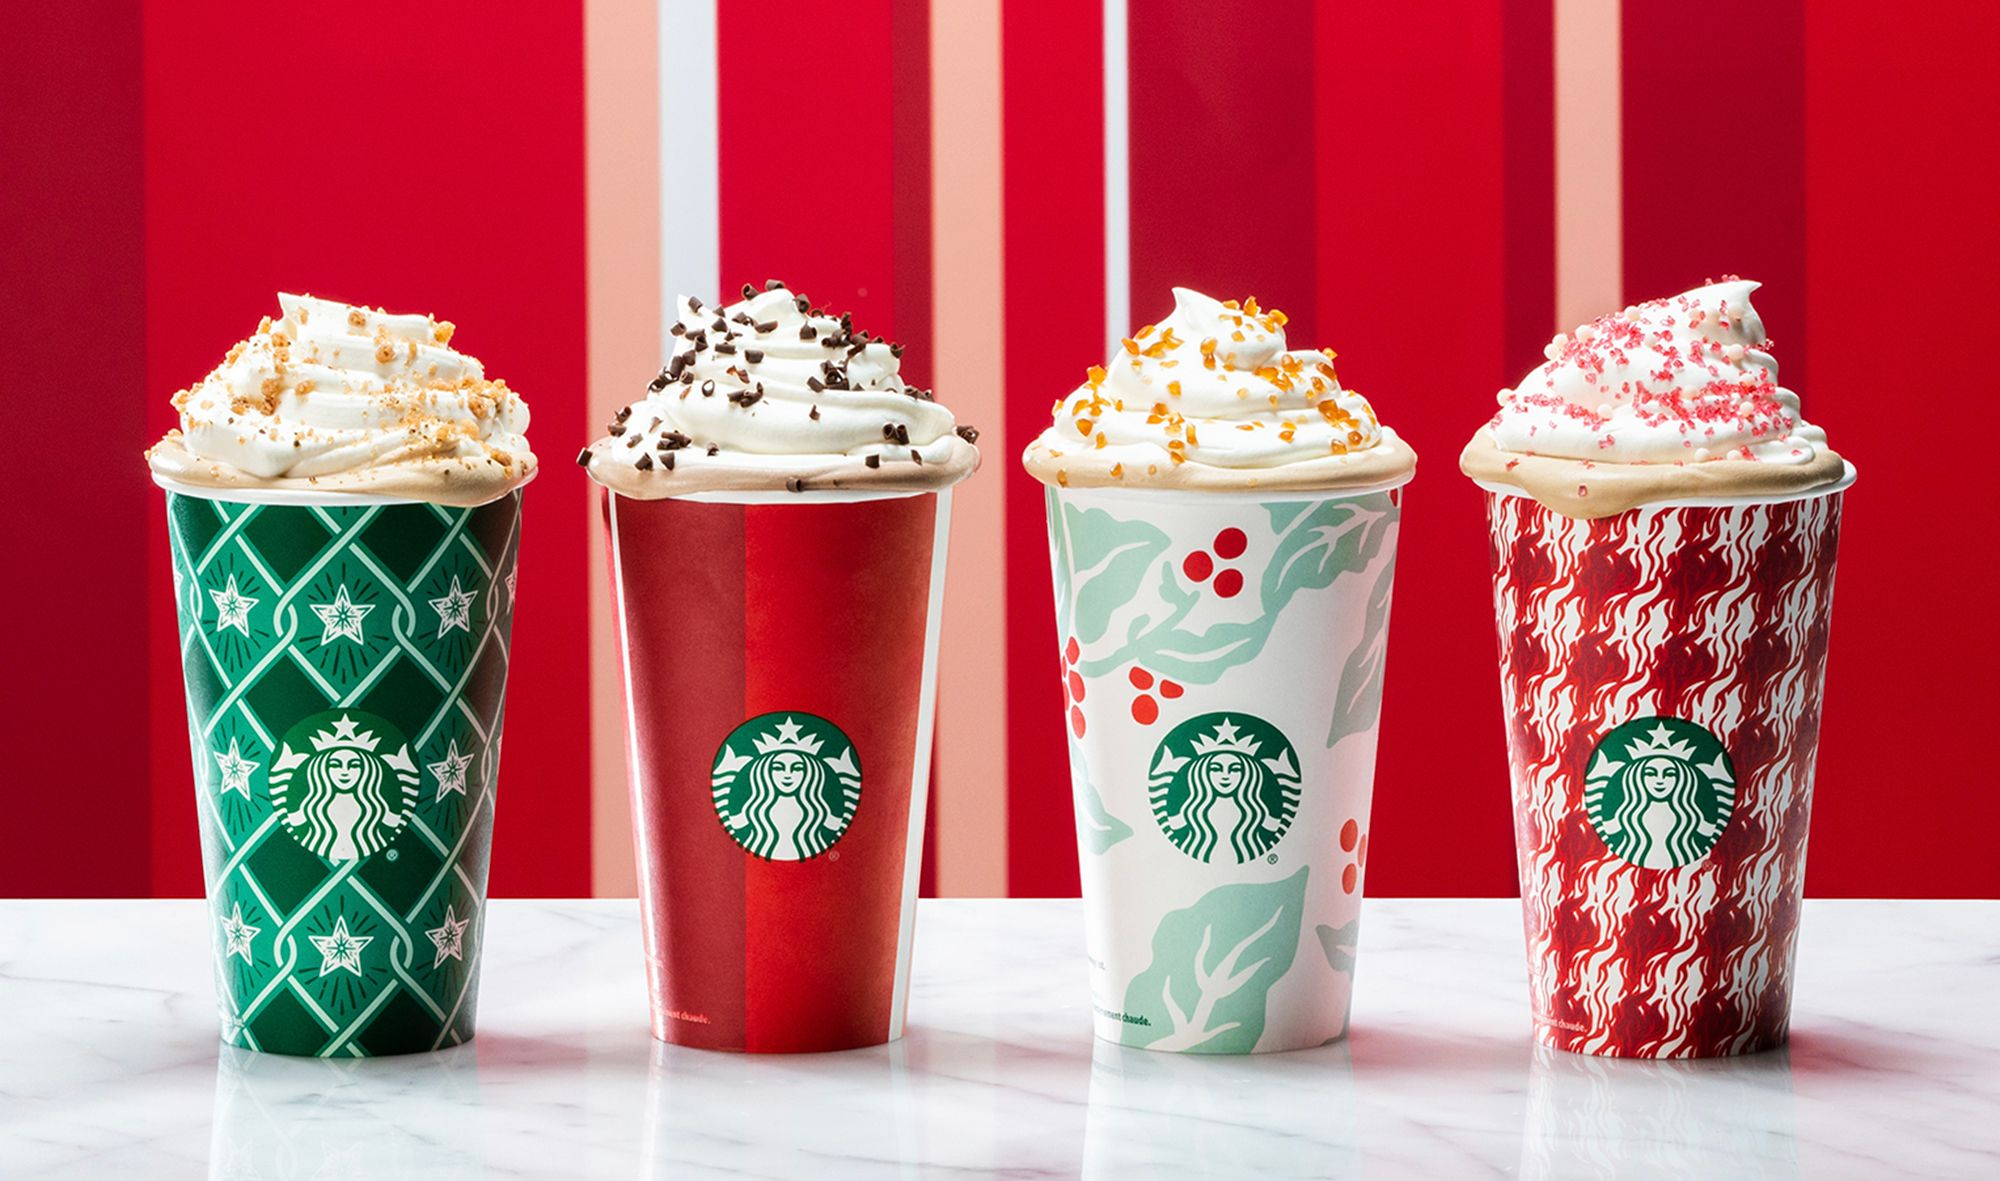 Is Starbucks Open On Christmas.Starbucks Holiday Cups Are Back In 4 New Designs And Not